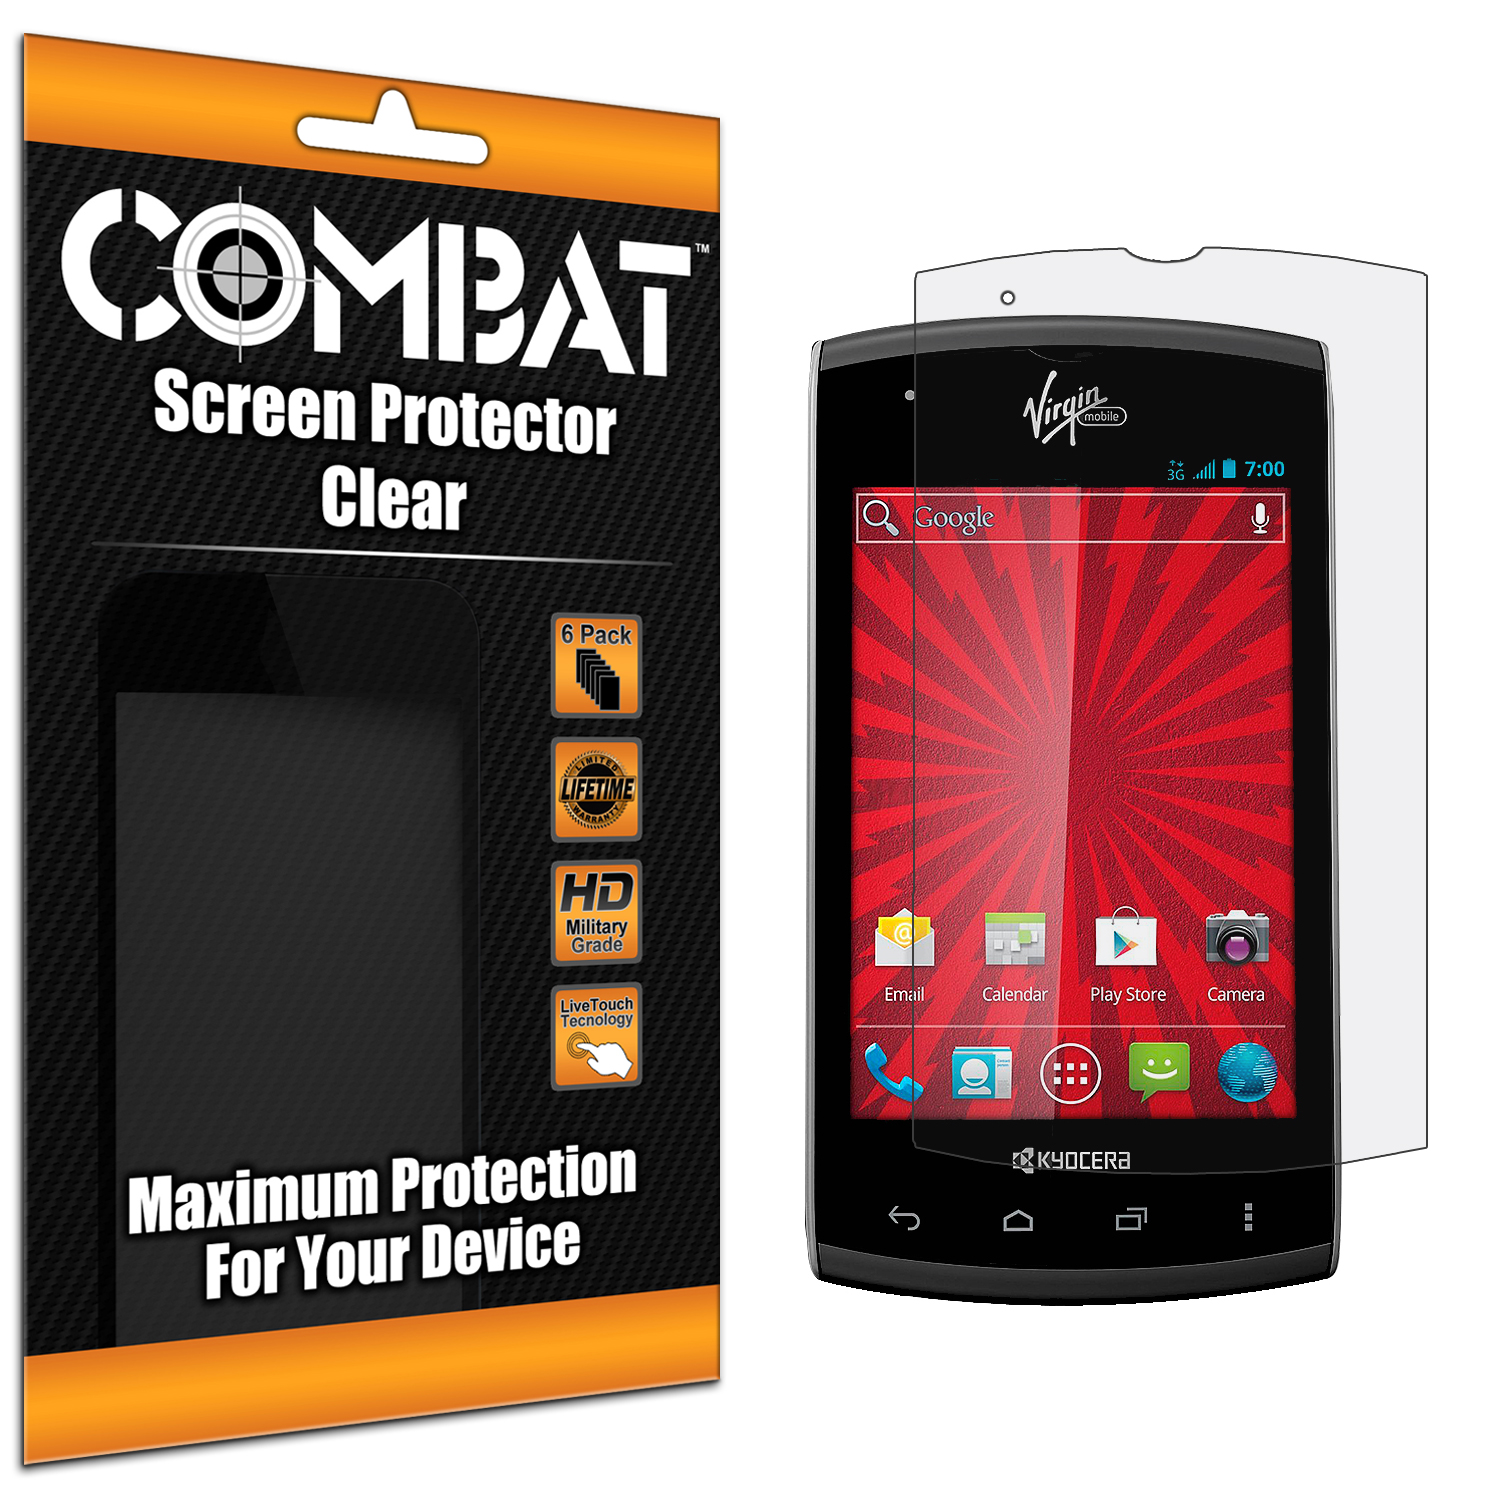 Kyocera Rise Combat 6 Pack HD Clear Screen Protector